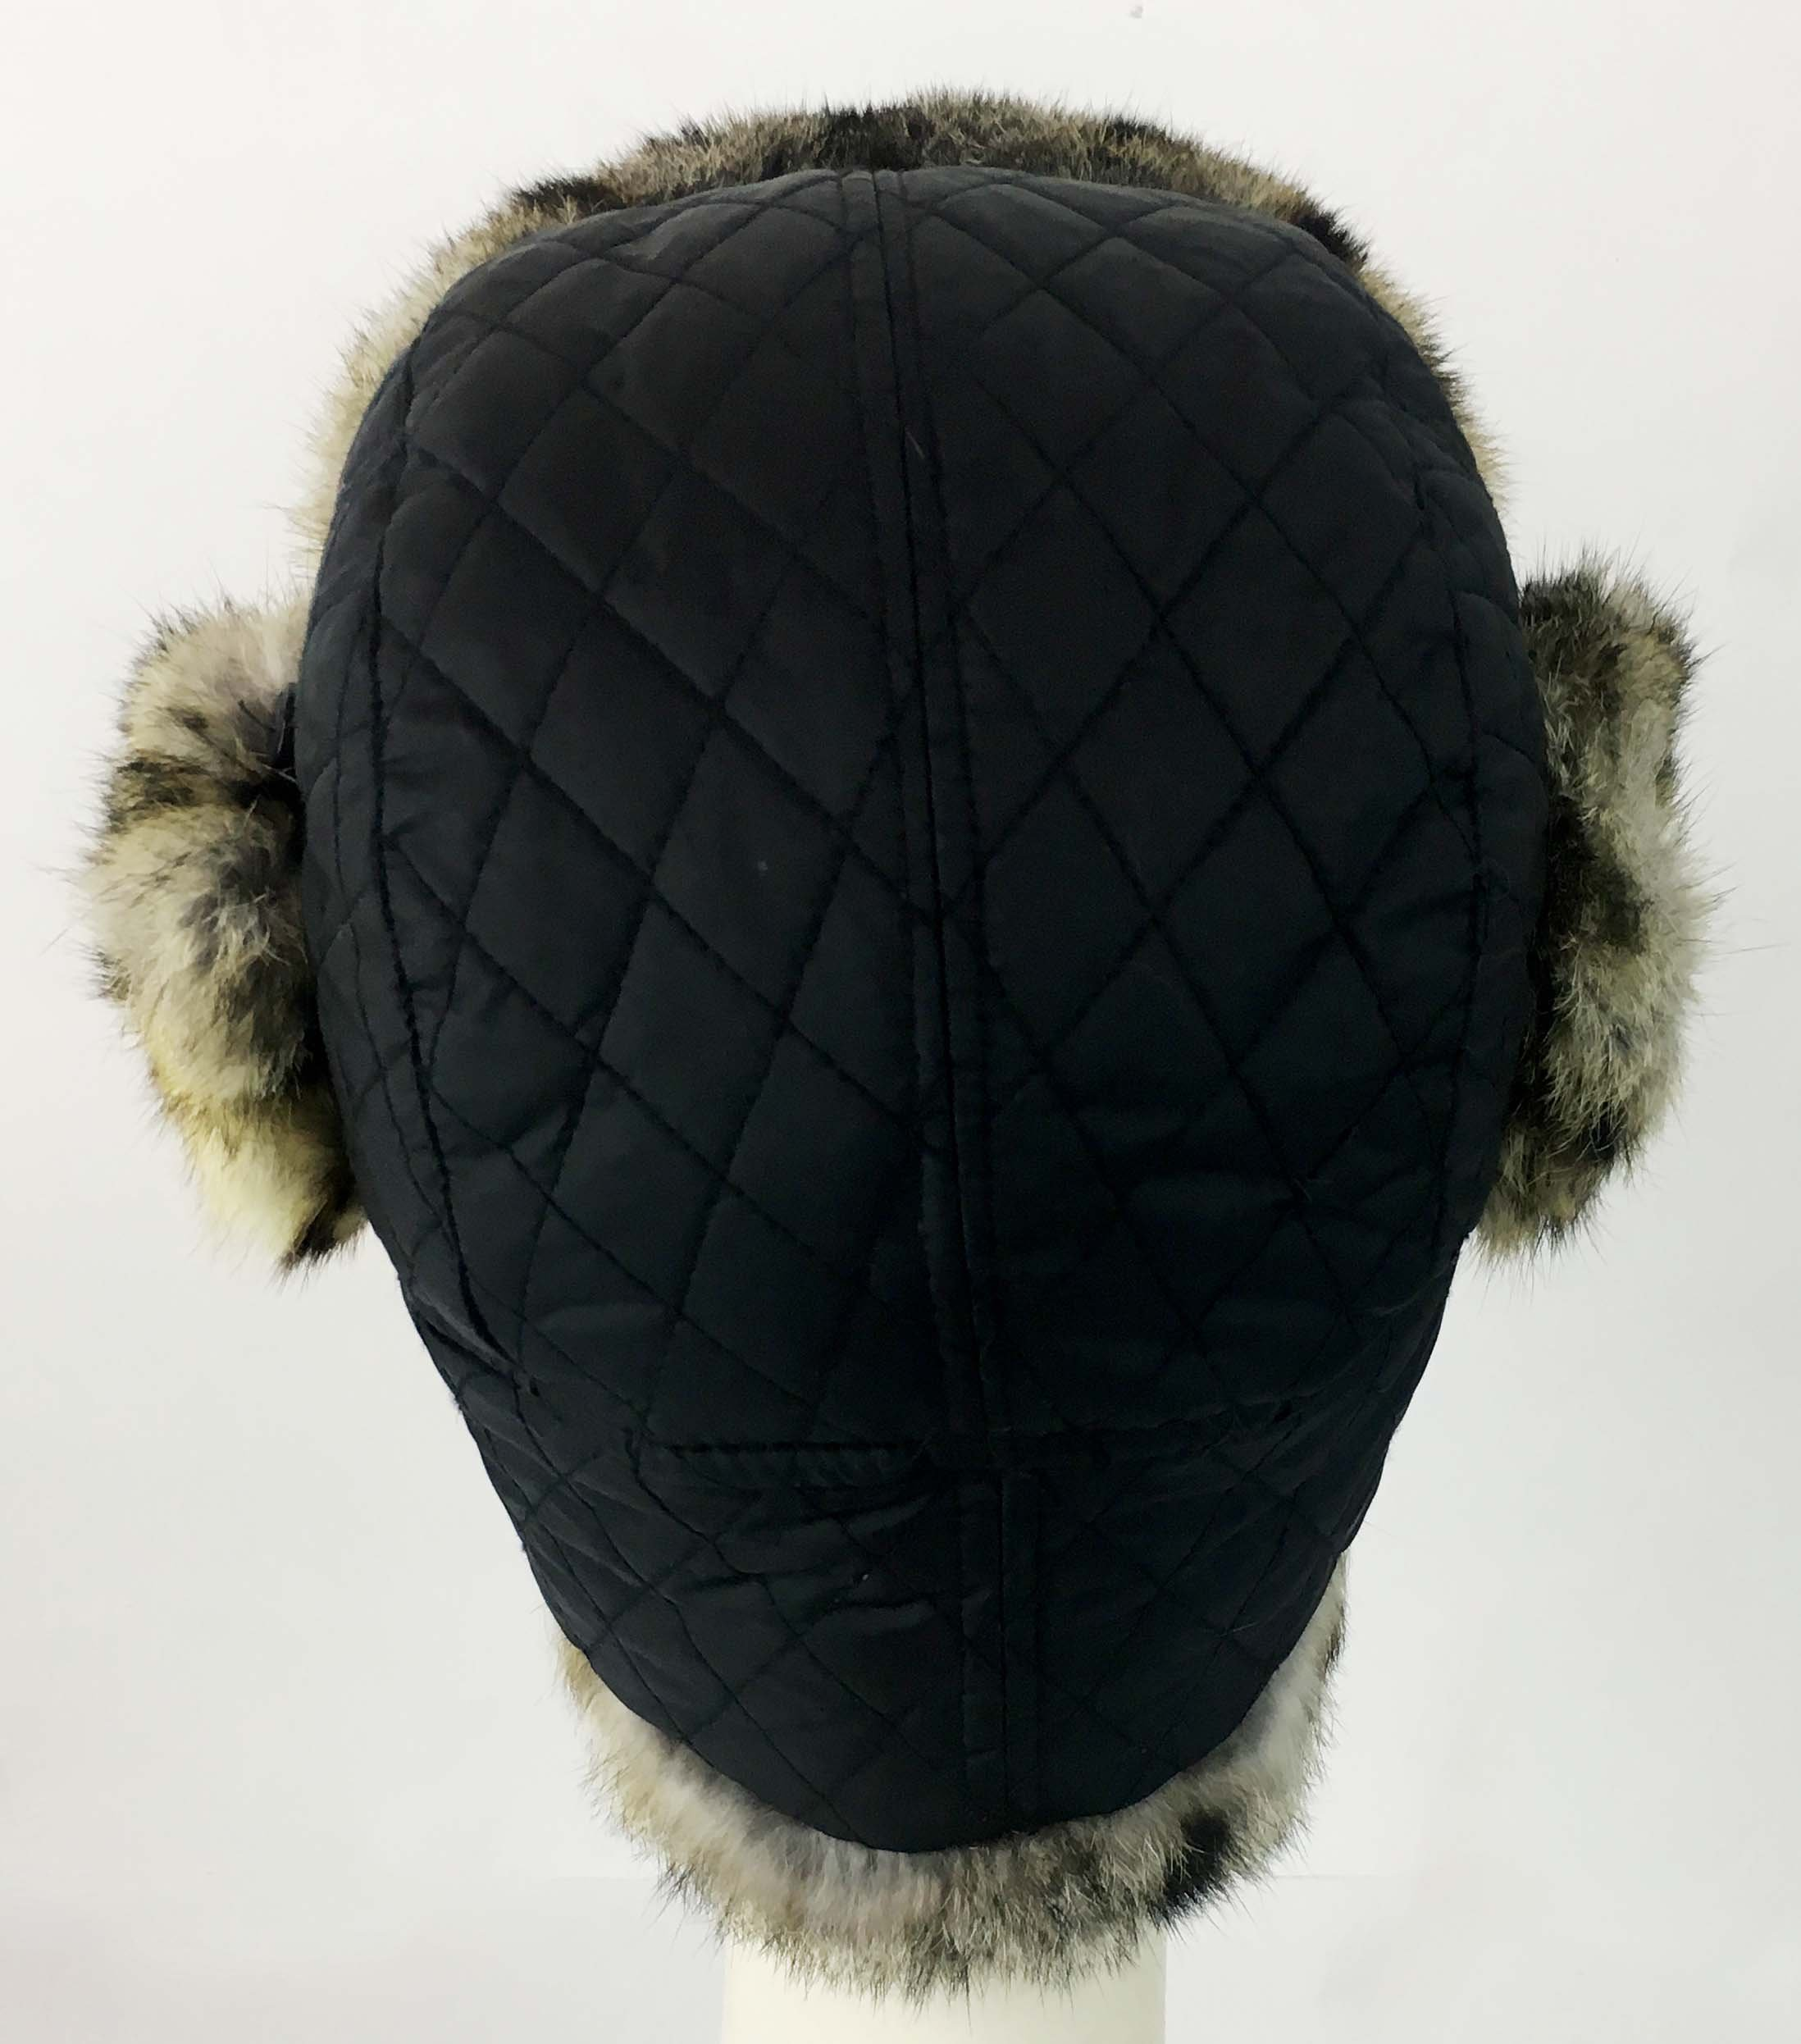 surell Trapper Aviator Hat with Rabbit Fur Trim - Warm Bomber Trooper Hat - Perfect Winter Luxury Gift (Leopard) by surell (Image #4)